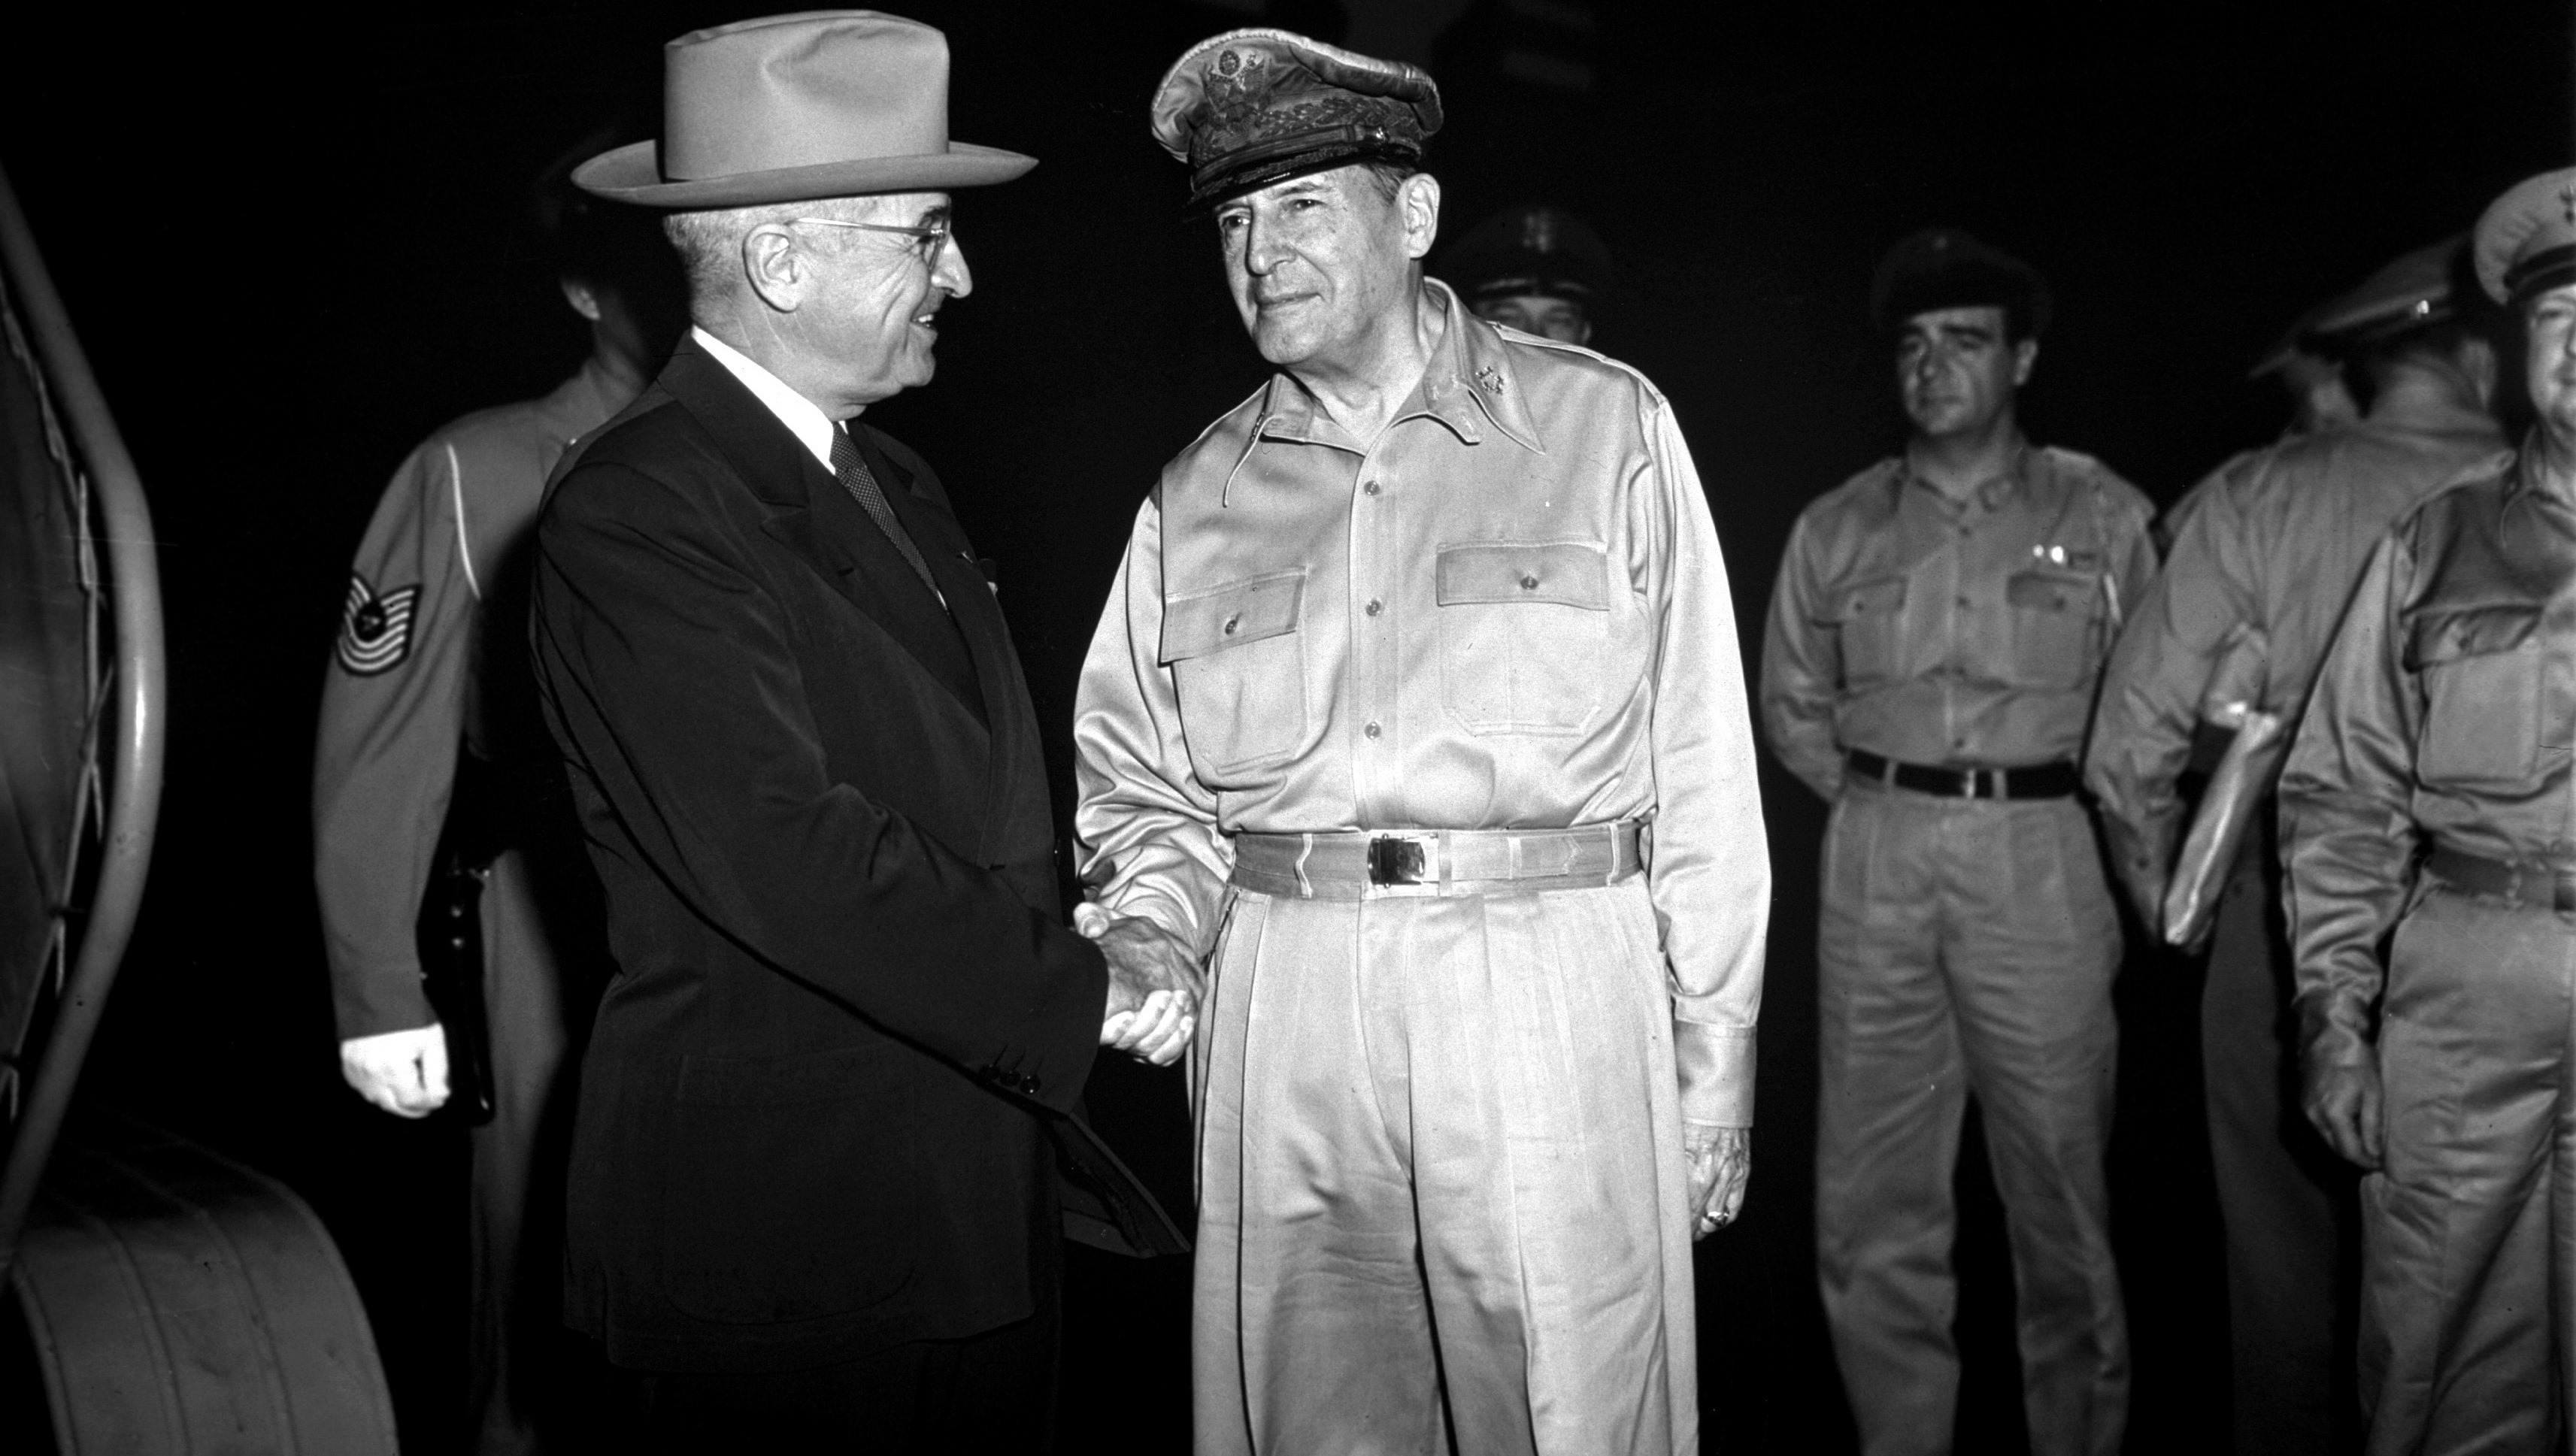 President Truman and General Douglas Macarthur at Wake Island, 1950. (Wikimedia Commons)